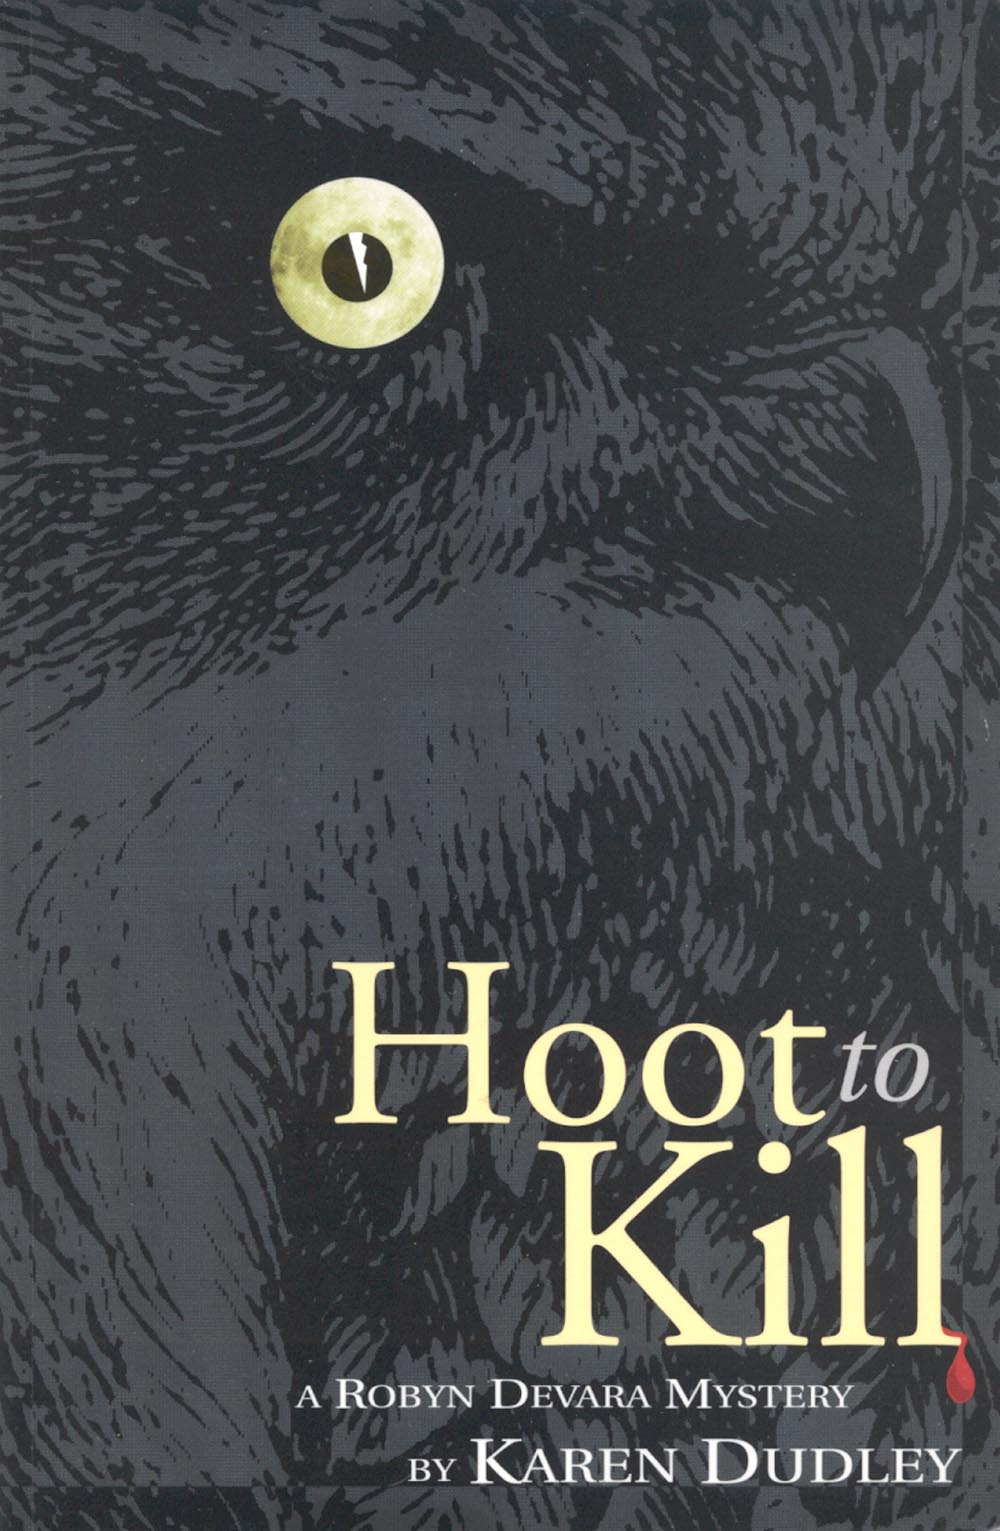 Hoot to Kill (trade) by Karen Dudley